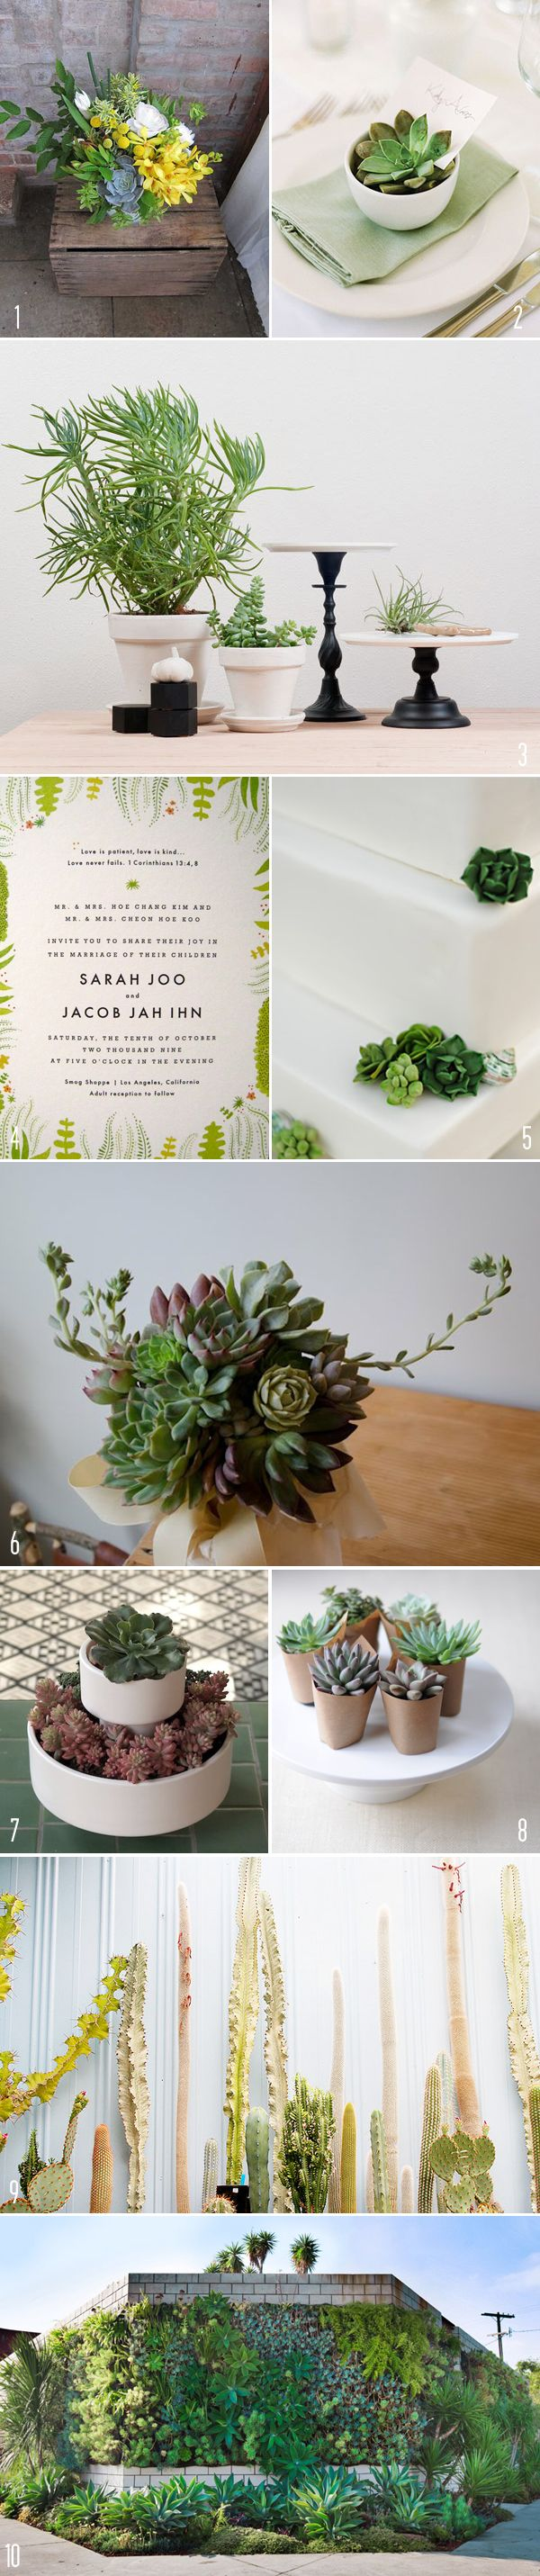 Inspiration for decorating with succulents (sounds weird, looks awesome, especially for summer).